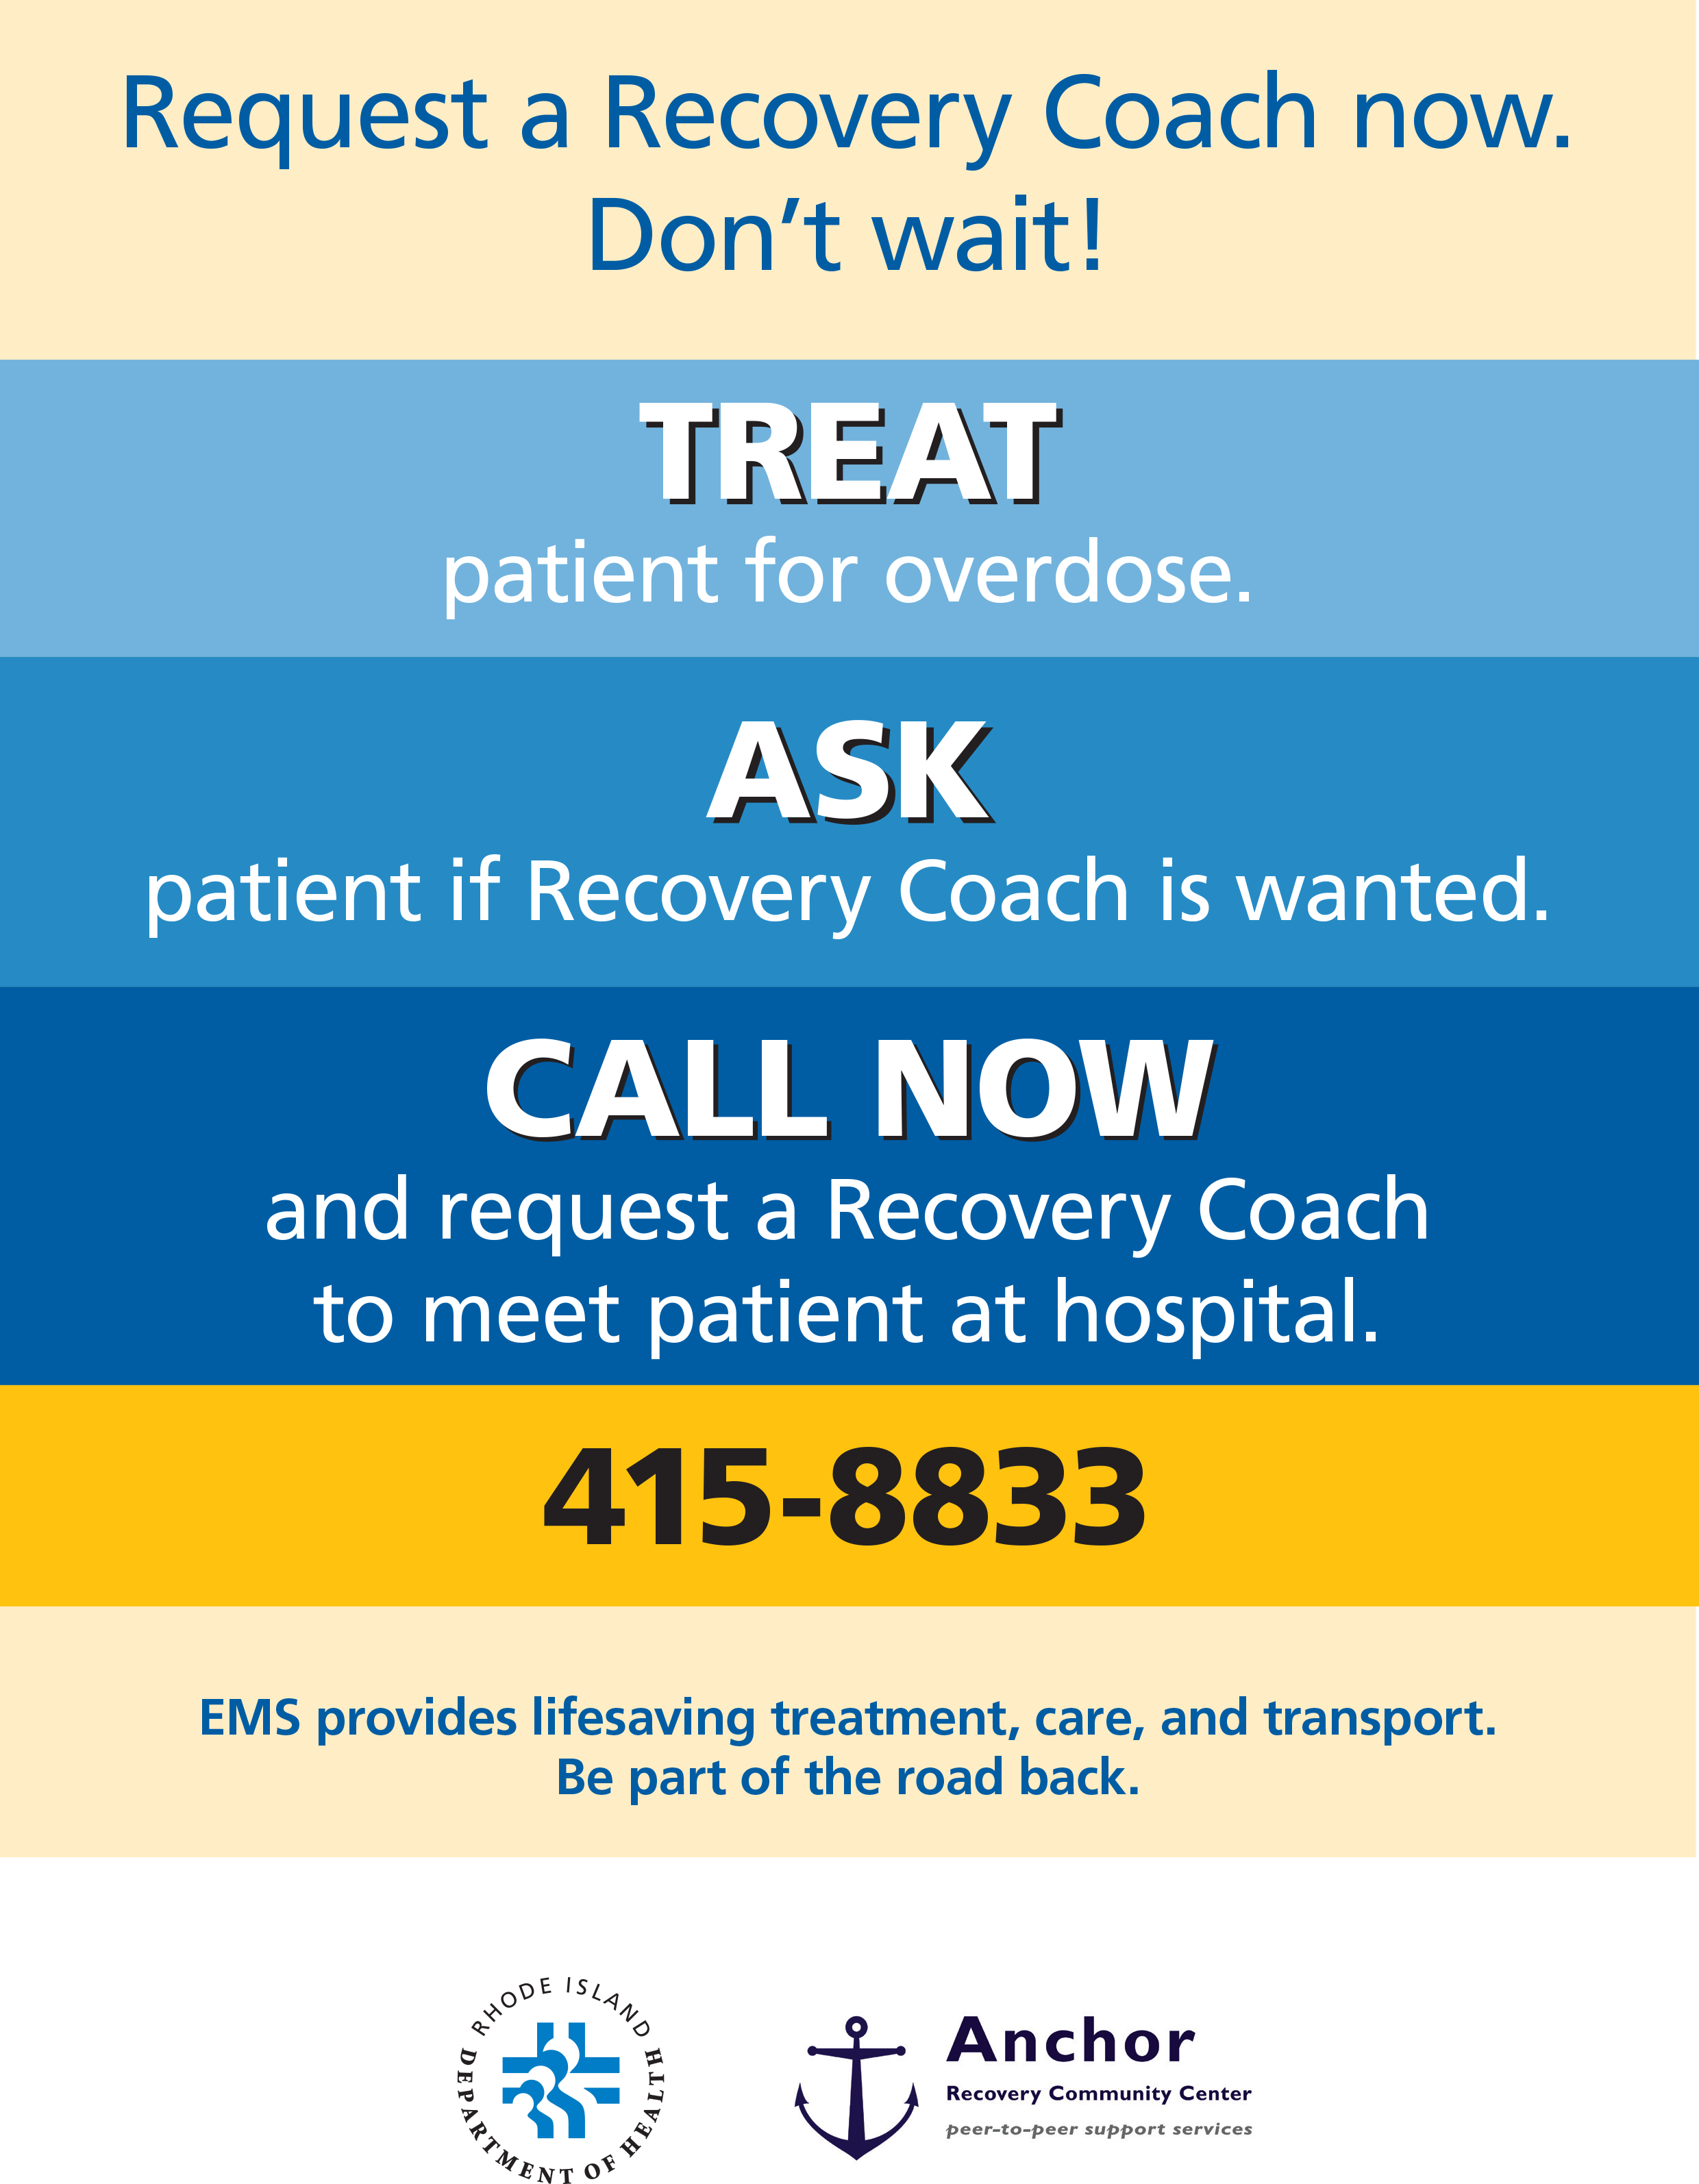 050916-emt-request-recovery-coach-flyer-002